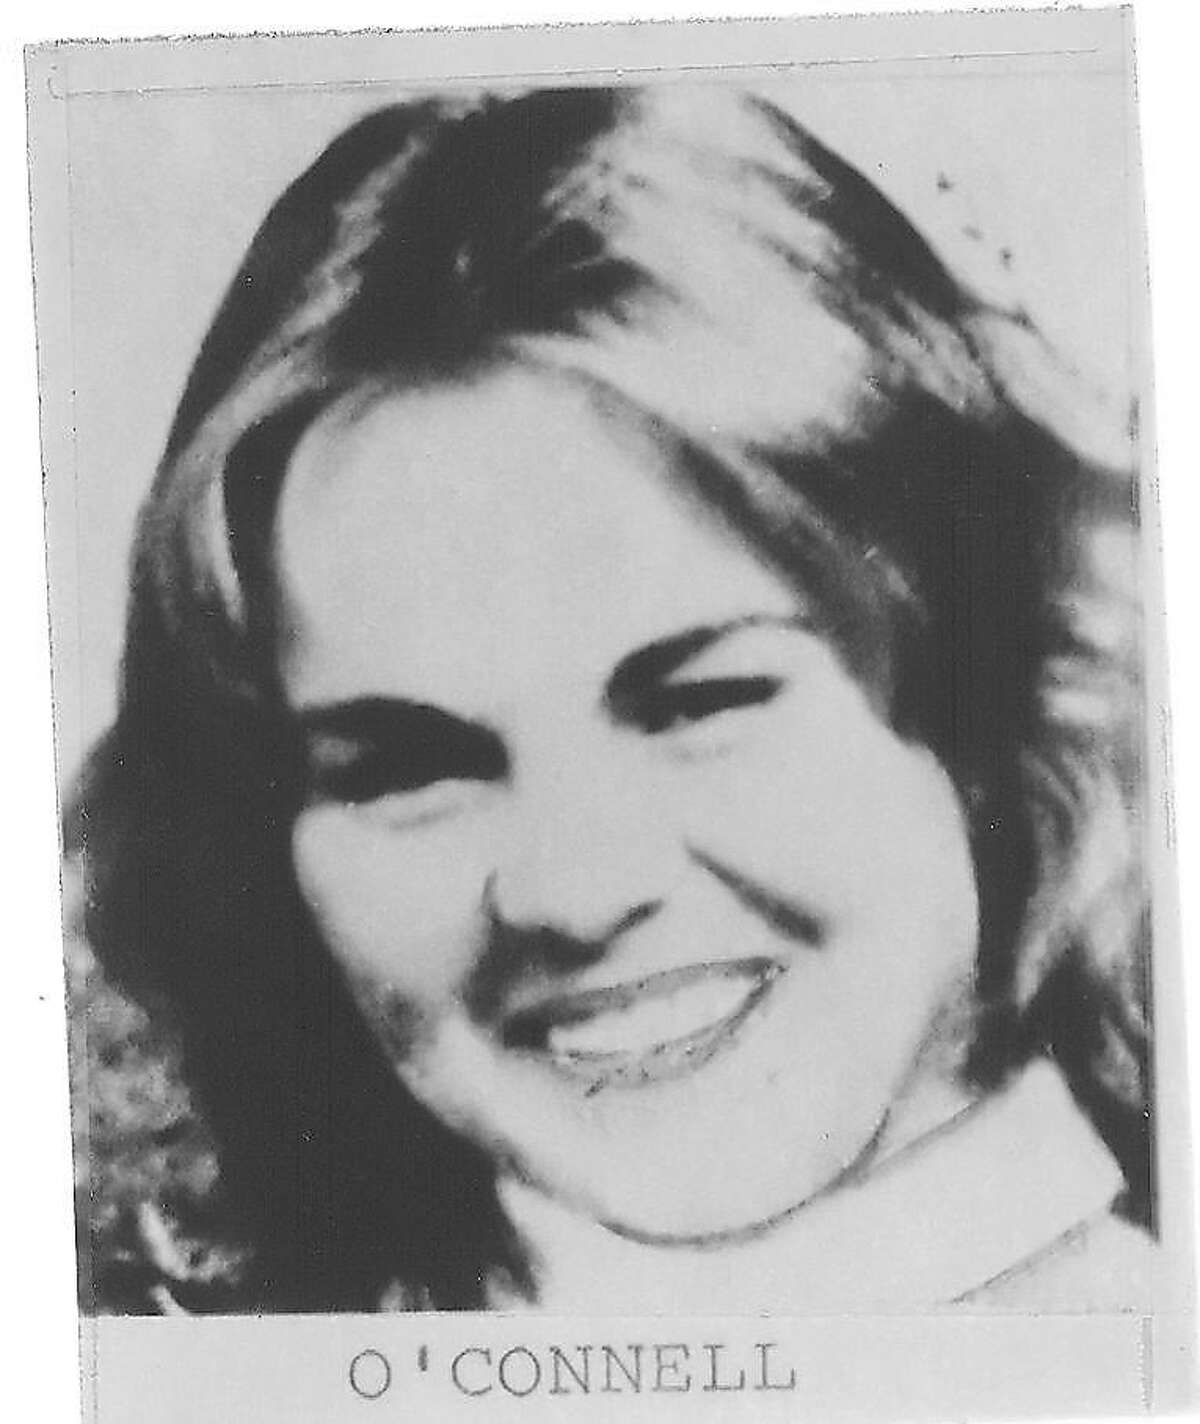 Diane Marie O'Connell, 22, of San Jose was shot to death, along with Shauna May, on Mount Wittenberg at Point Reyes National Seashore on Nov. 28, 1980, by the Trailside Killer David Joseph Carpenter.